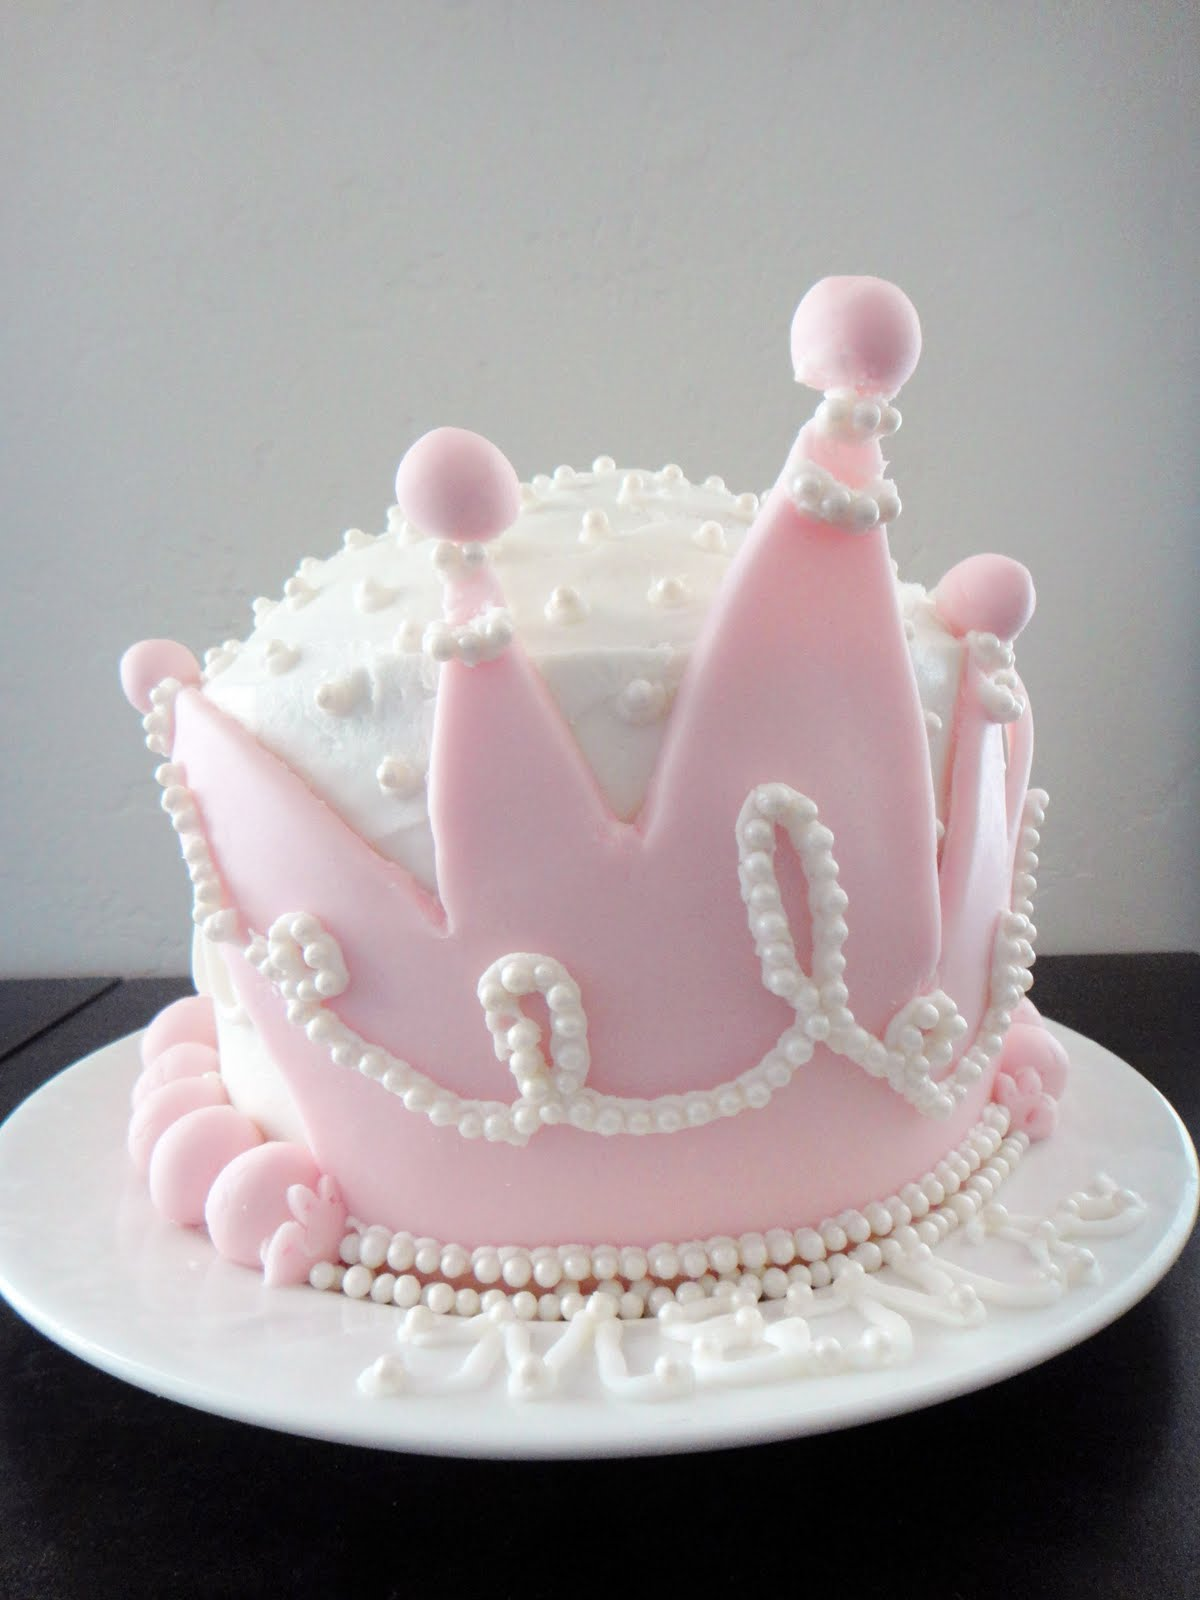 Princess Cake Design : Princess Cake